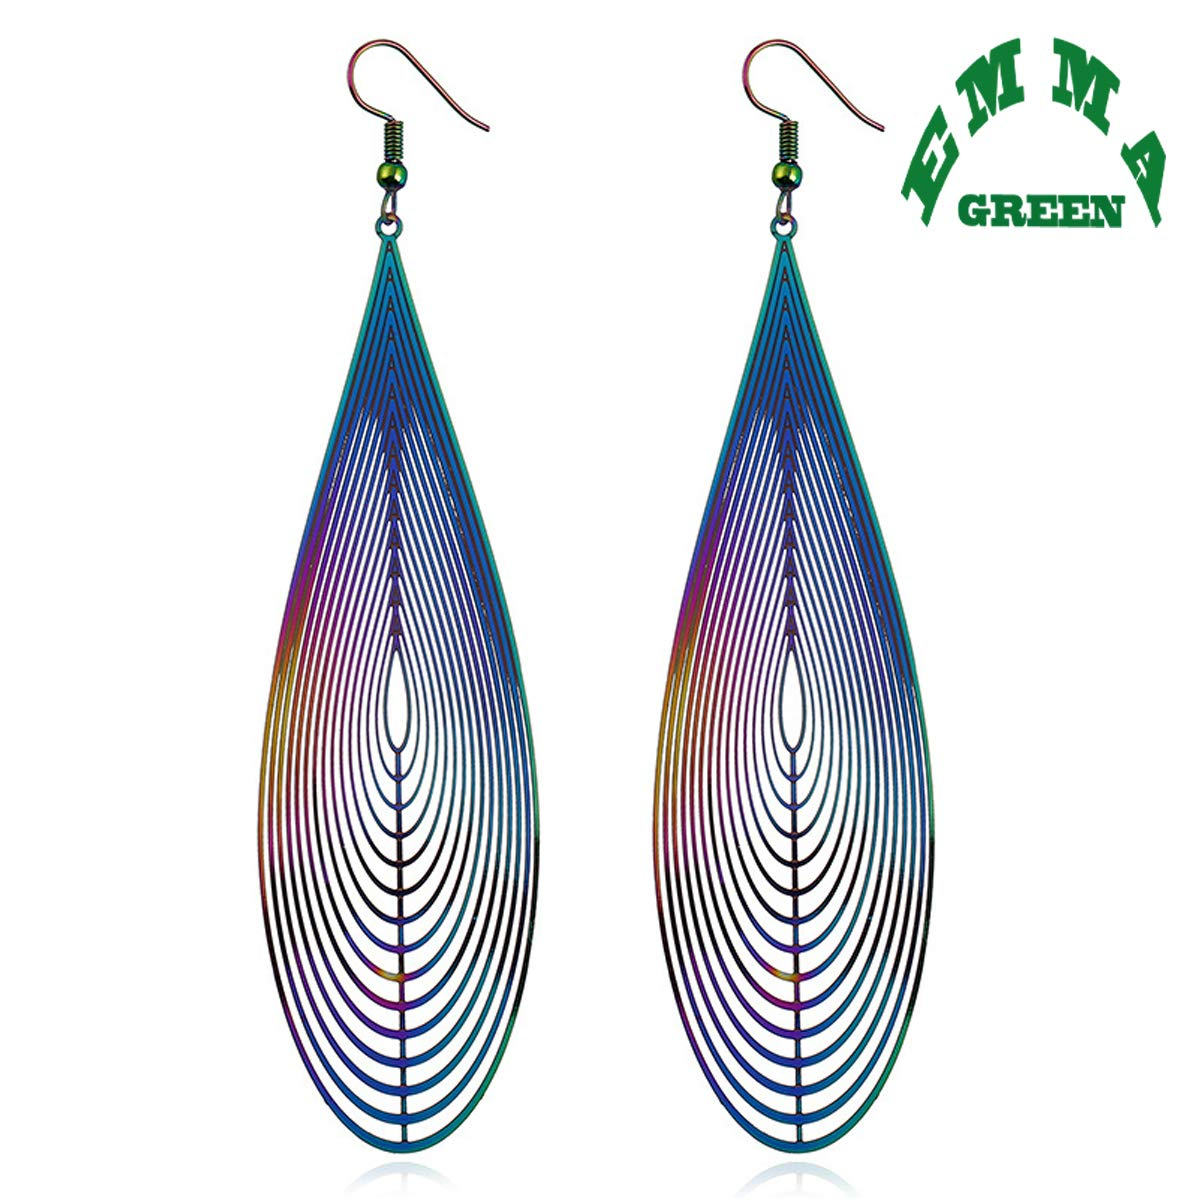 EmmaGreen Big Dangle Earrings Hook Earrings Illusion Long Pendant Dangle Jewelry for Woman Girls